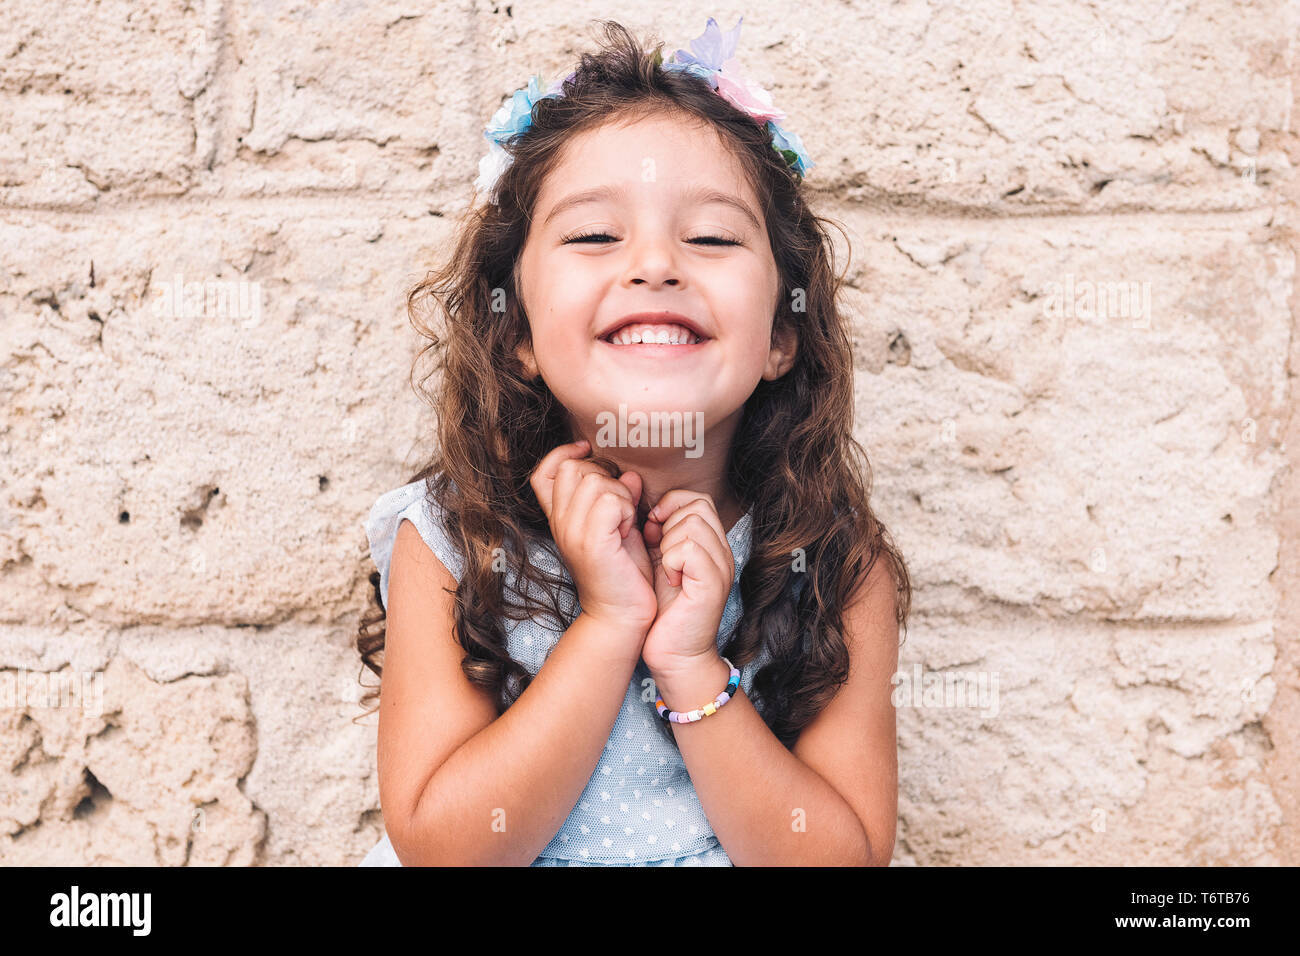 little girl smiles funny, is in front of a stone wall and wears a blue dress and a flower headband - Stock Image